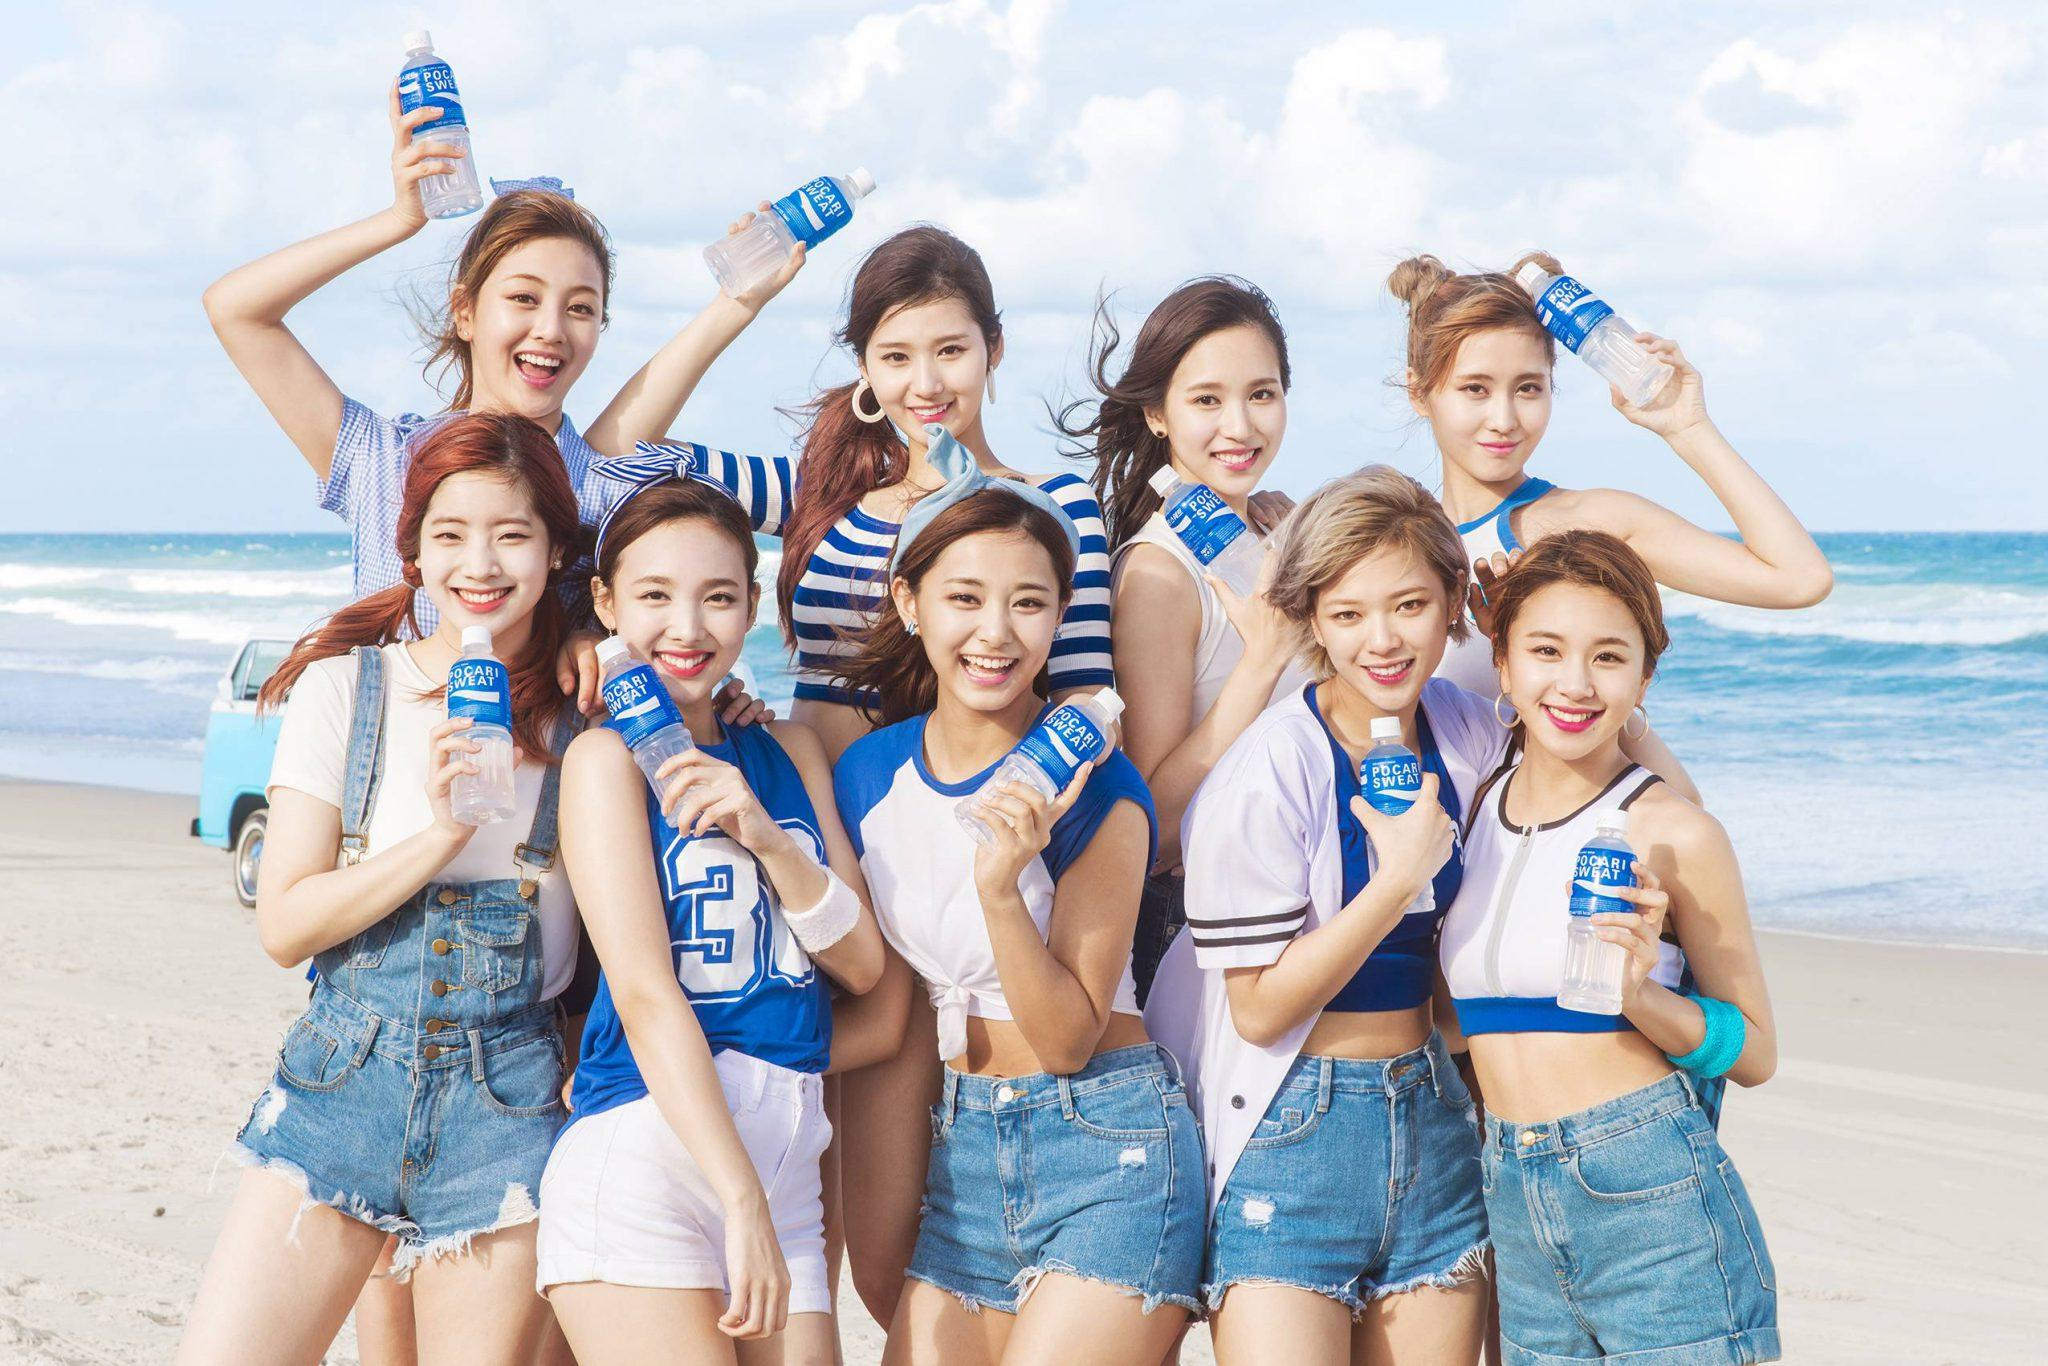 9 reasons why twice is the next nations girl group koreaboo active communication with fans stopboris Image collections